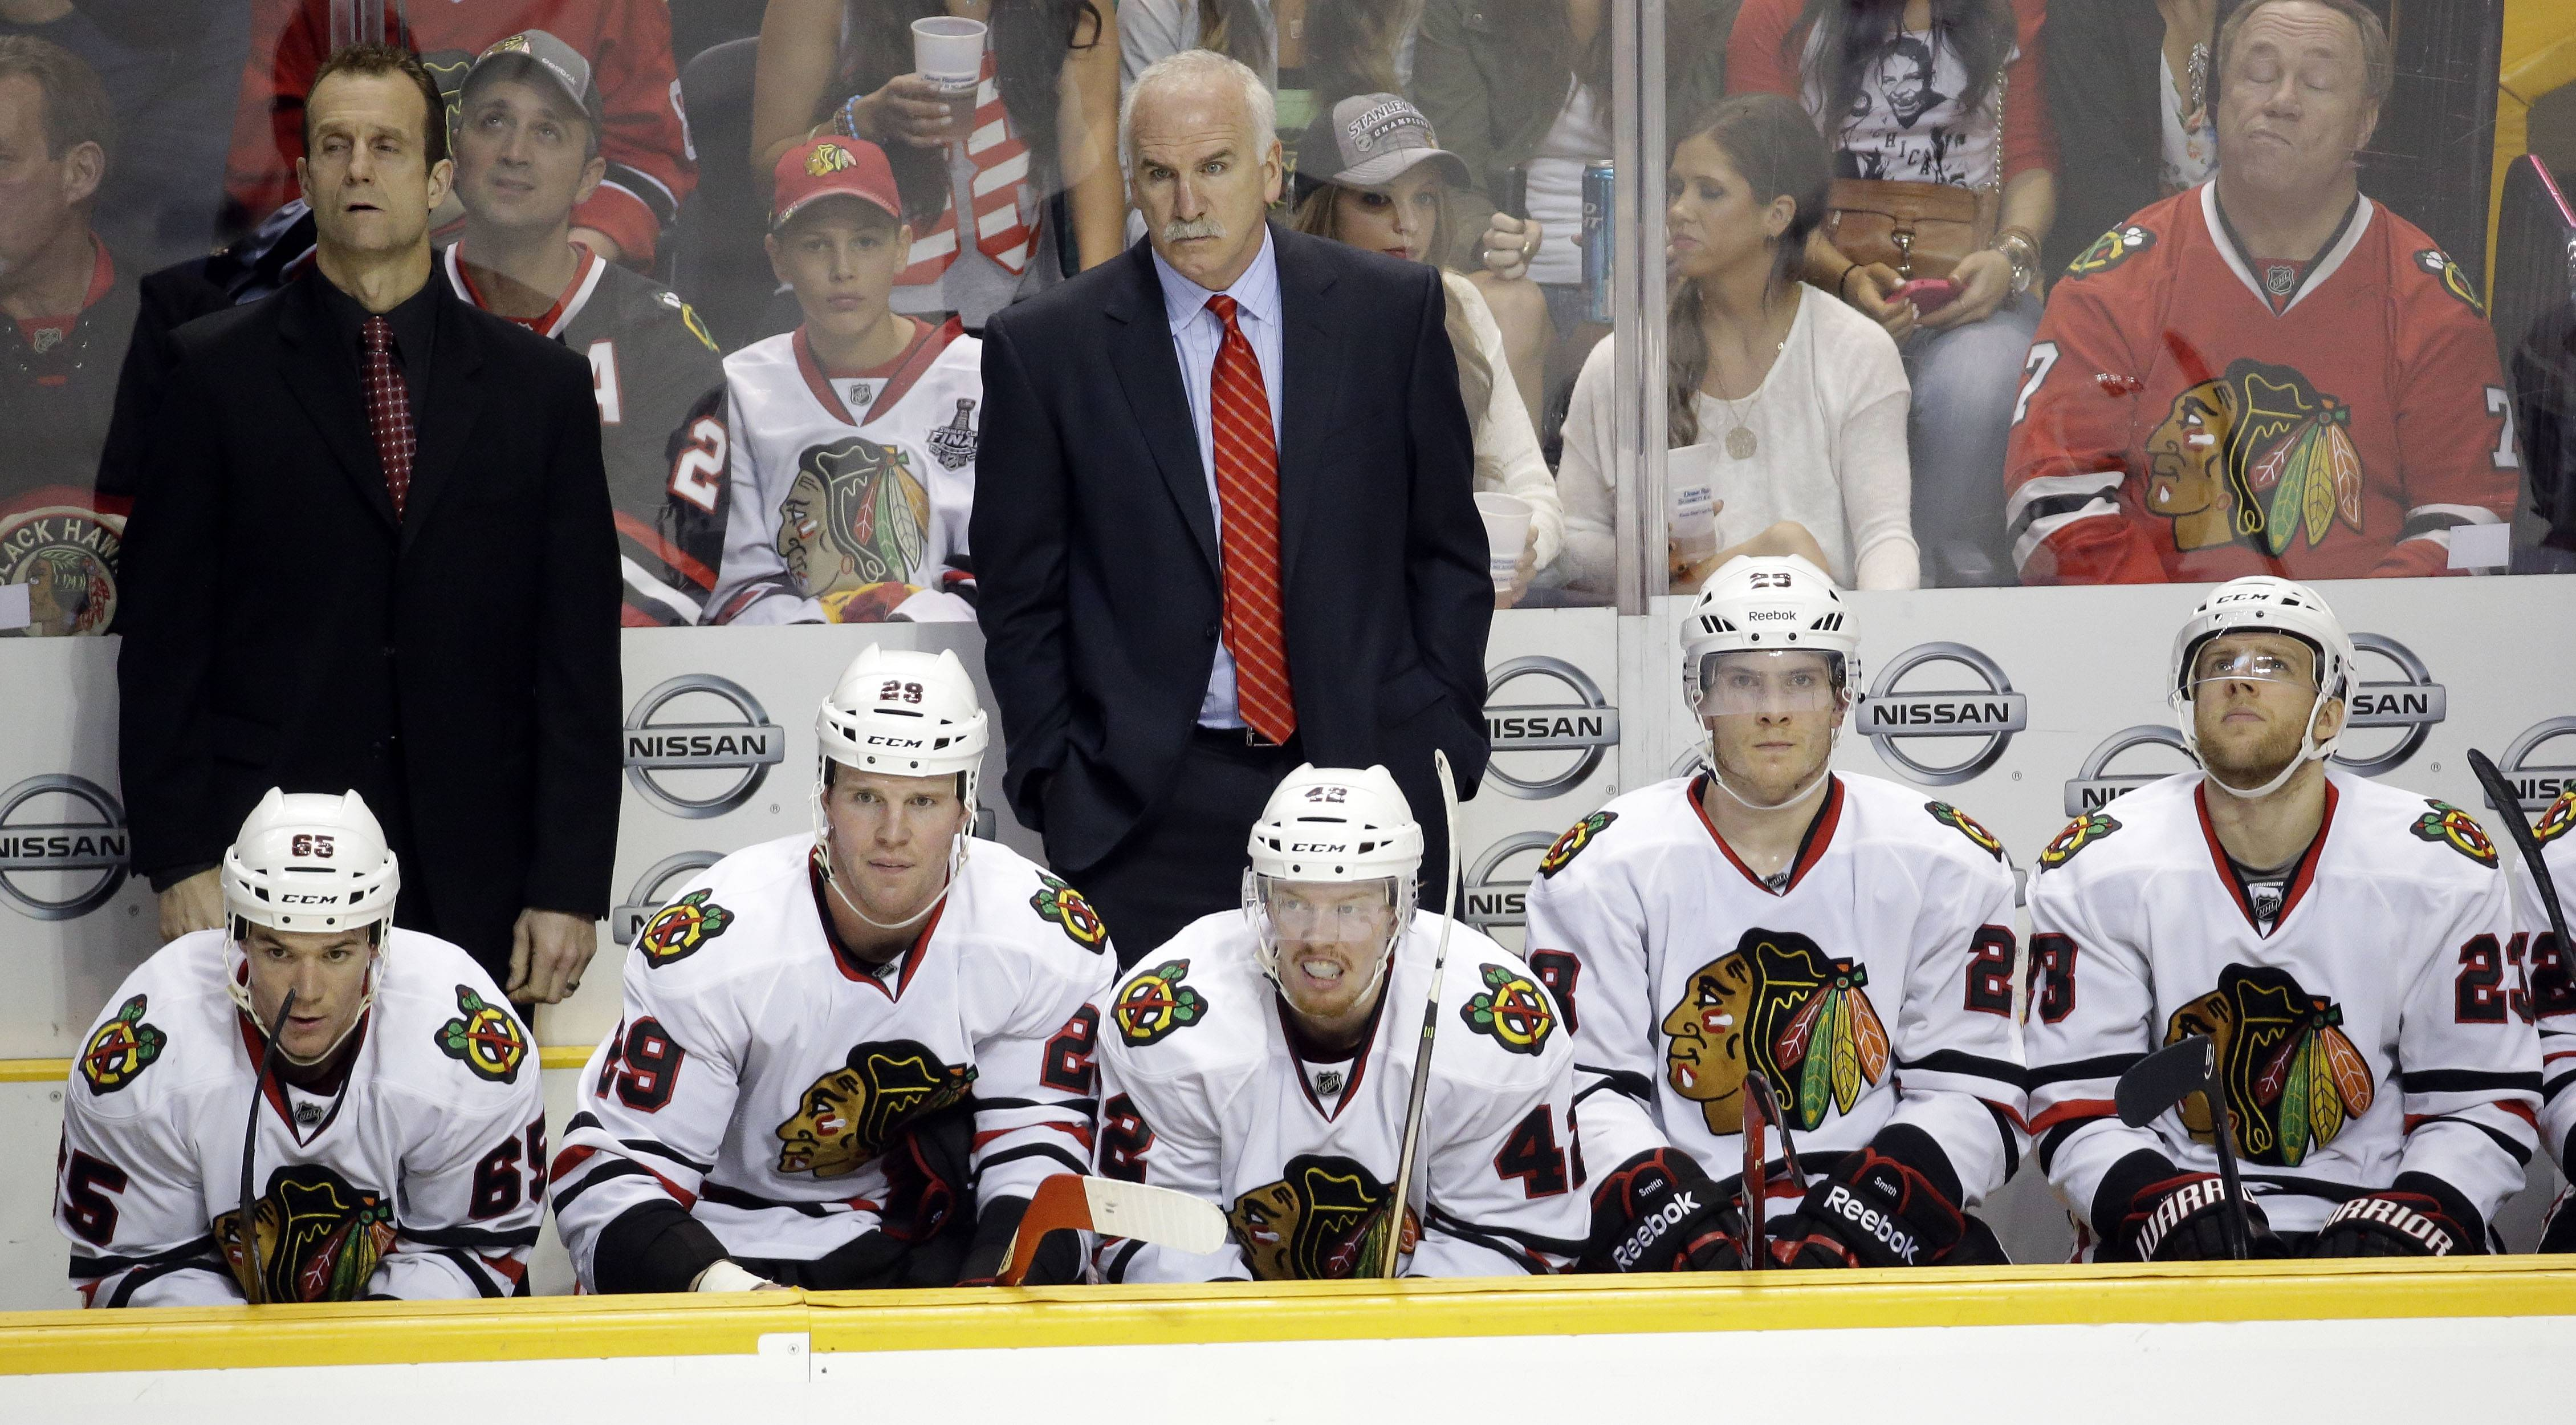 Chicago Blackhawks coach Joel Quenneville, center, and assistant coach Jamie Kompon, left, watch the action in the final seconds of an NHL hockey game against the Nashville Predators Saturday, April 12, 2014, in Nashville, Tenn. The Predators won 7-5.